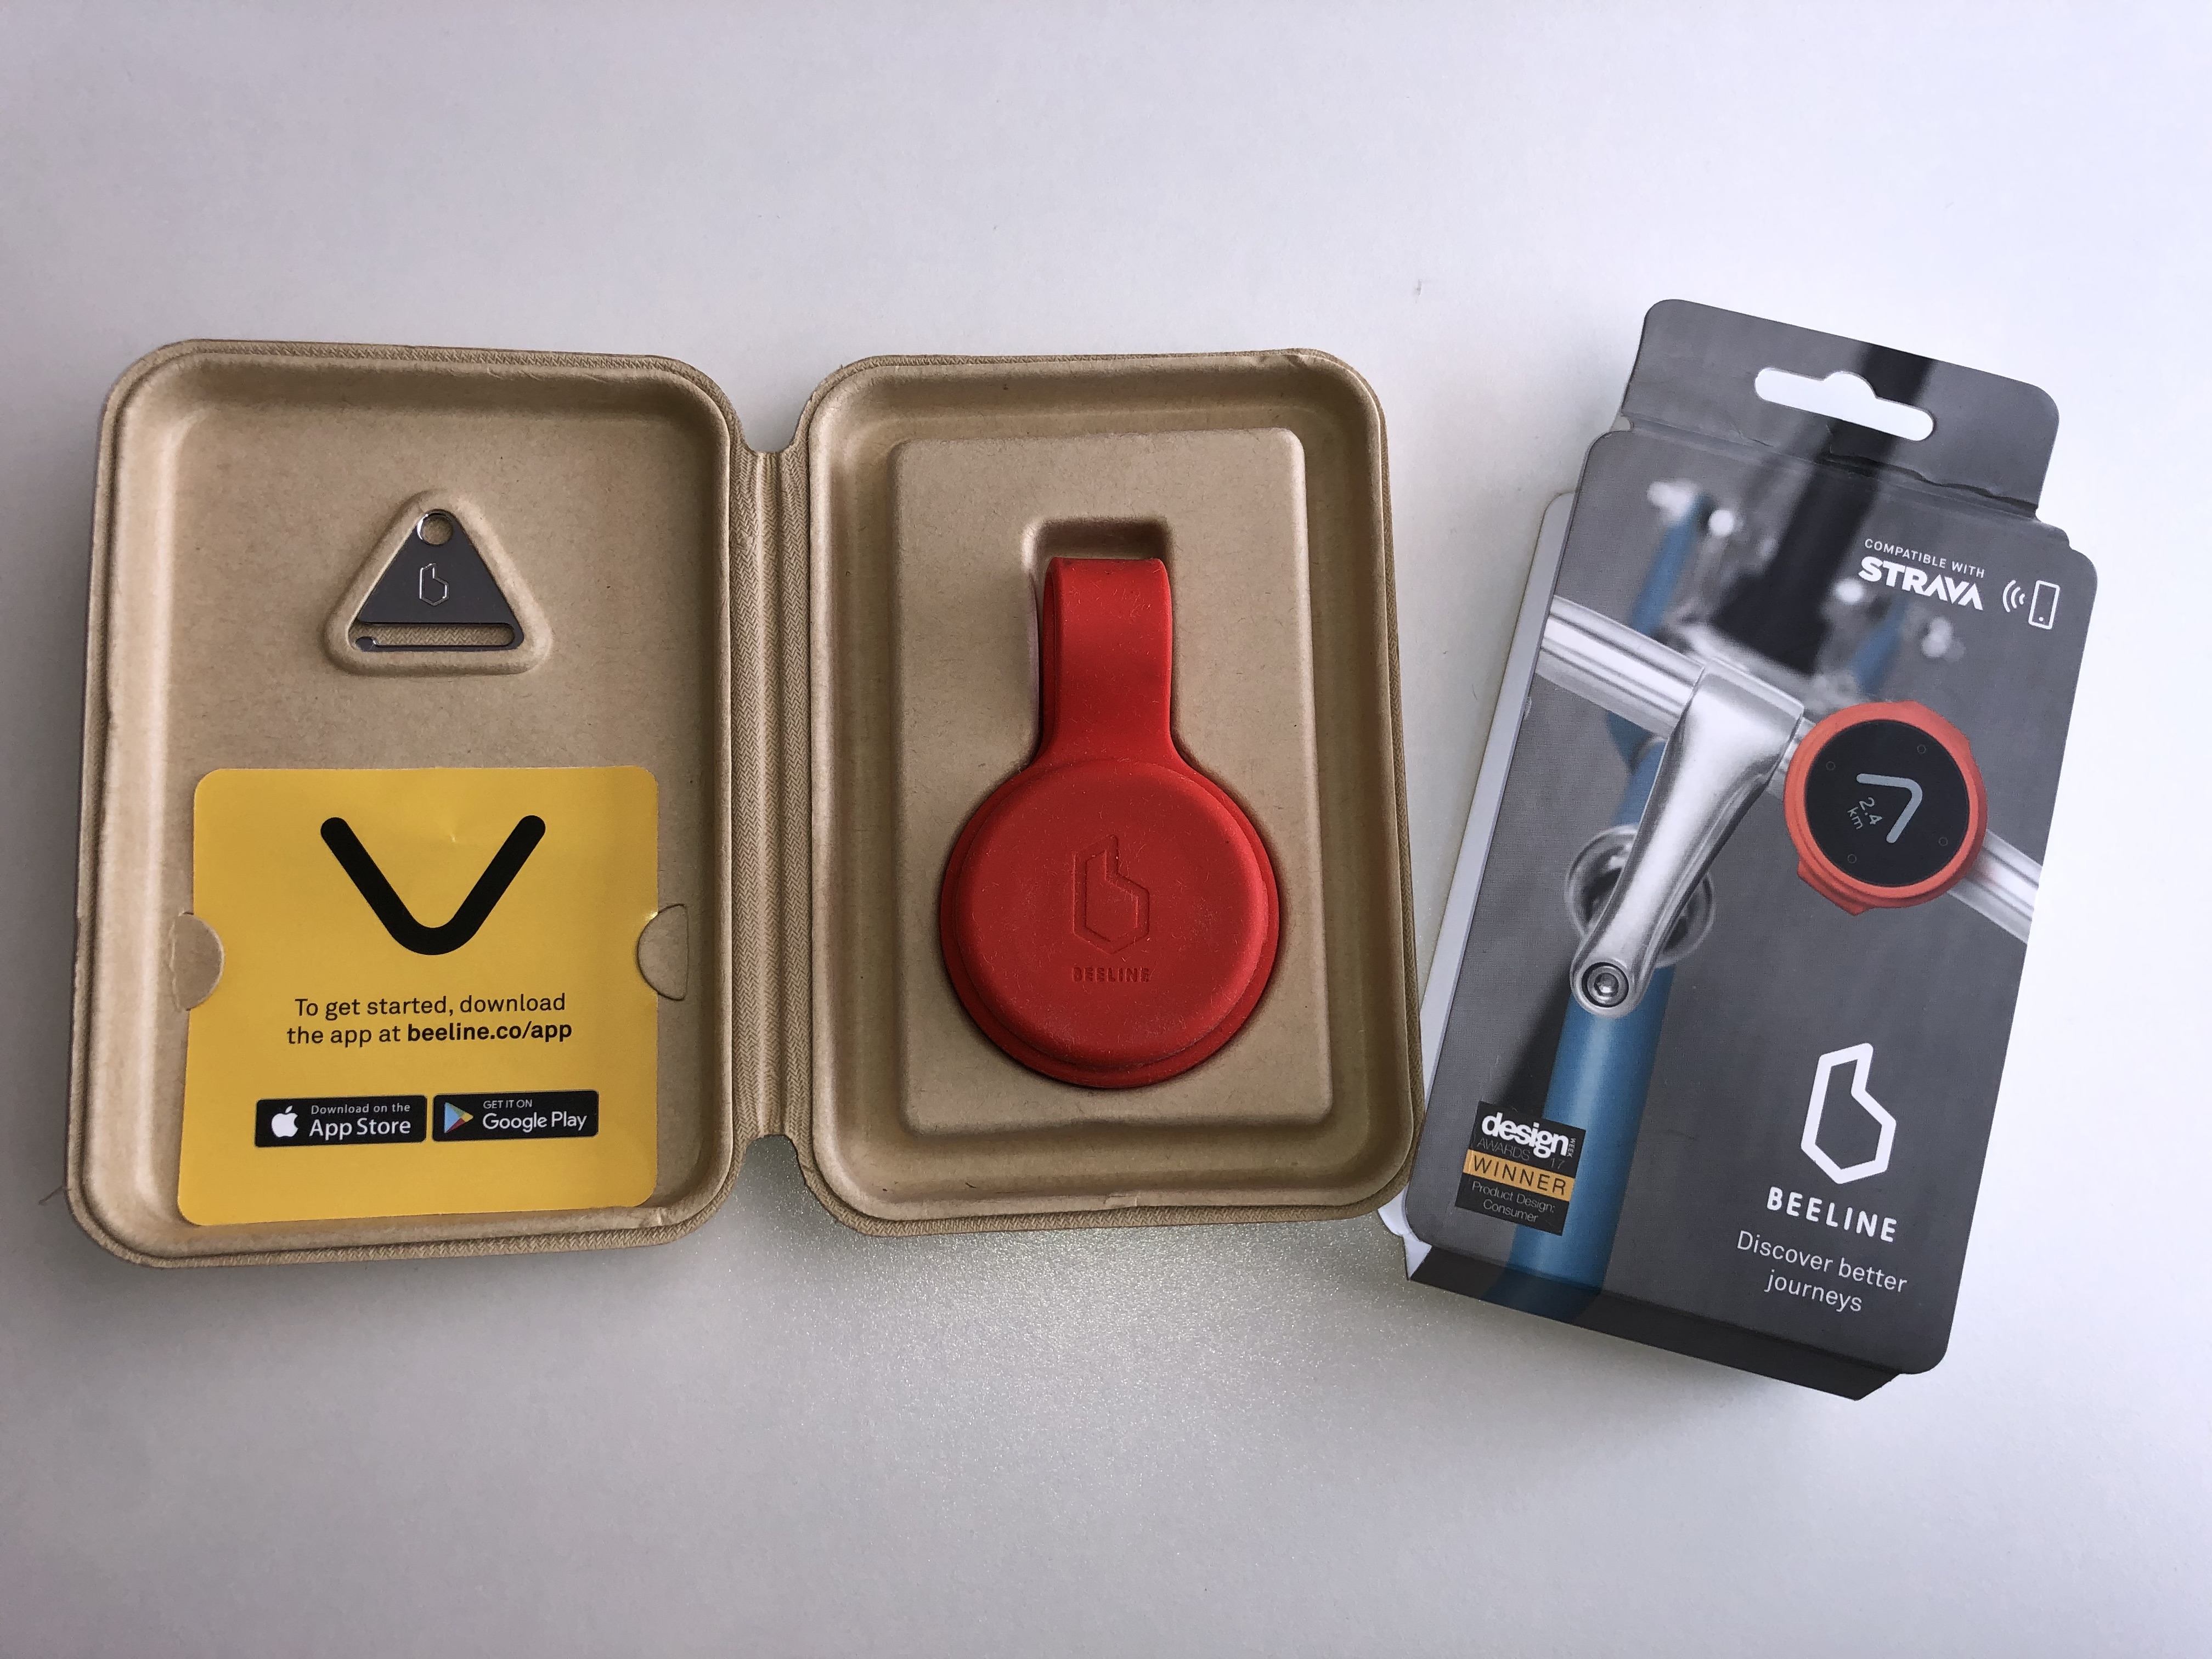 Opened red Beeline Velo box showing device, strap, box sleeve, keyring and instructions